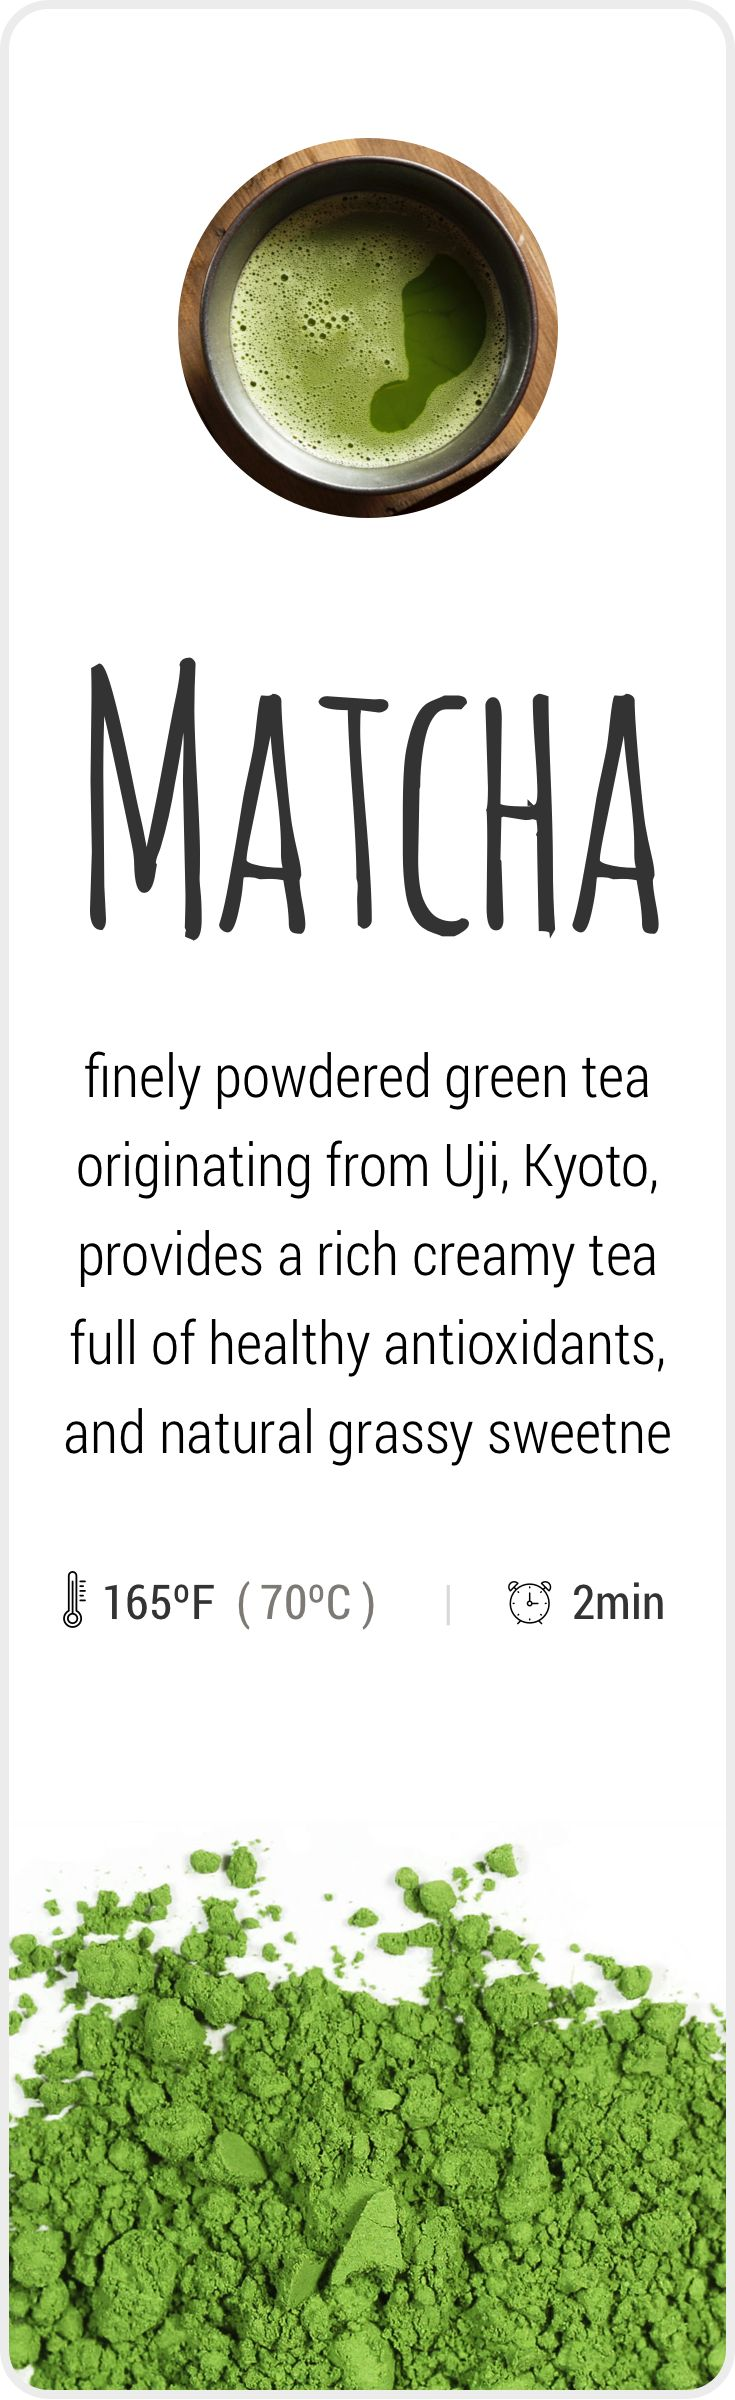 Farm-fresh powdered green Matcha tea from Uji, Japan.